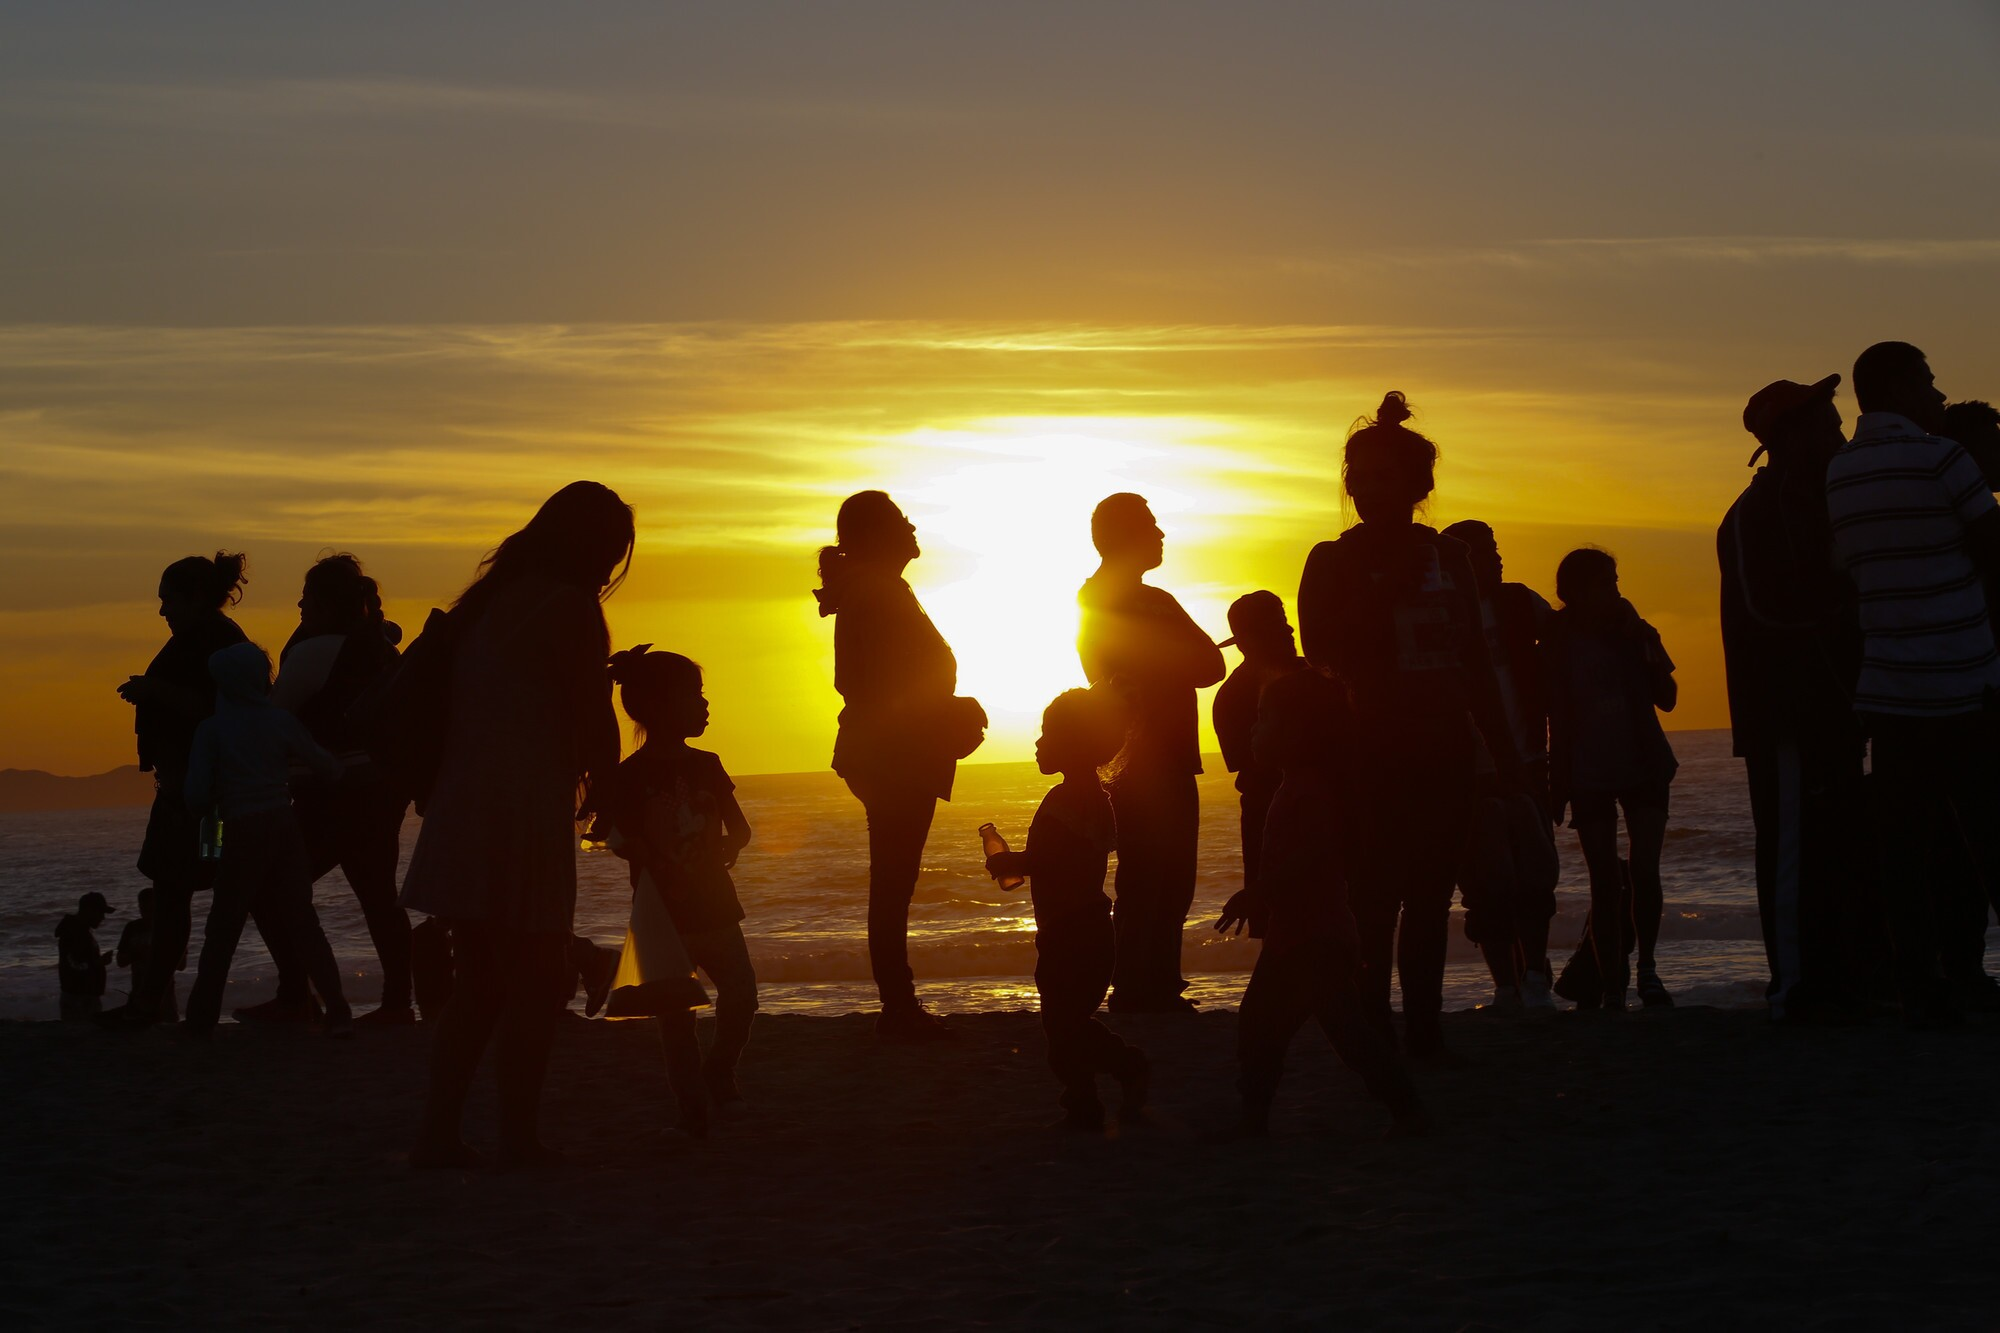 A group of Central American migrants silhouetted by the sunset at the beach by the border fence